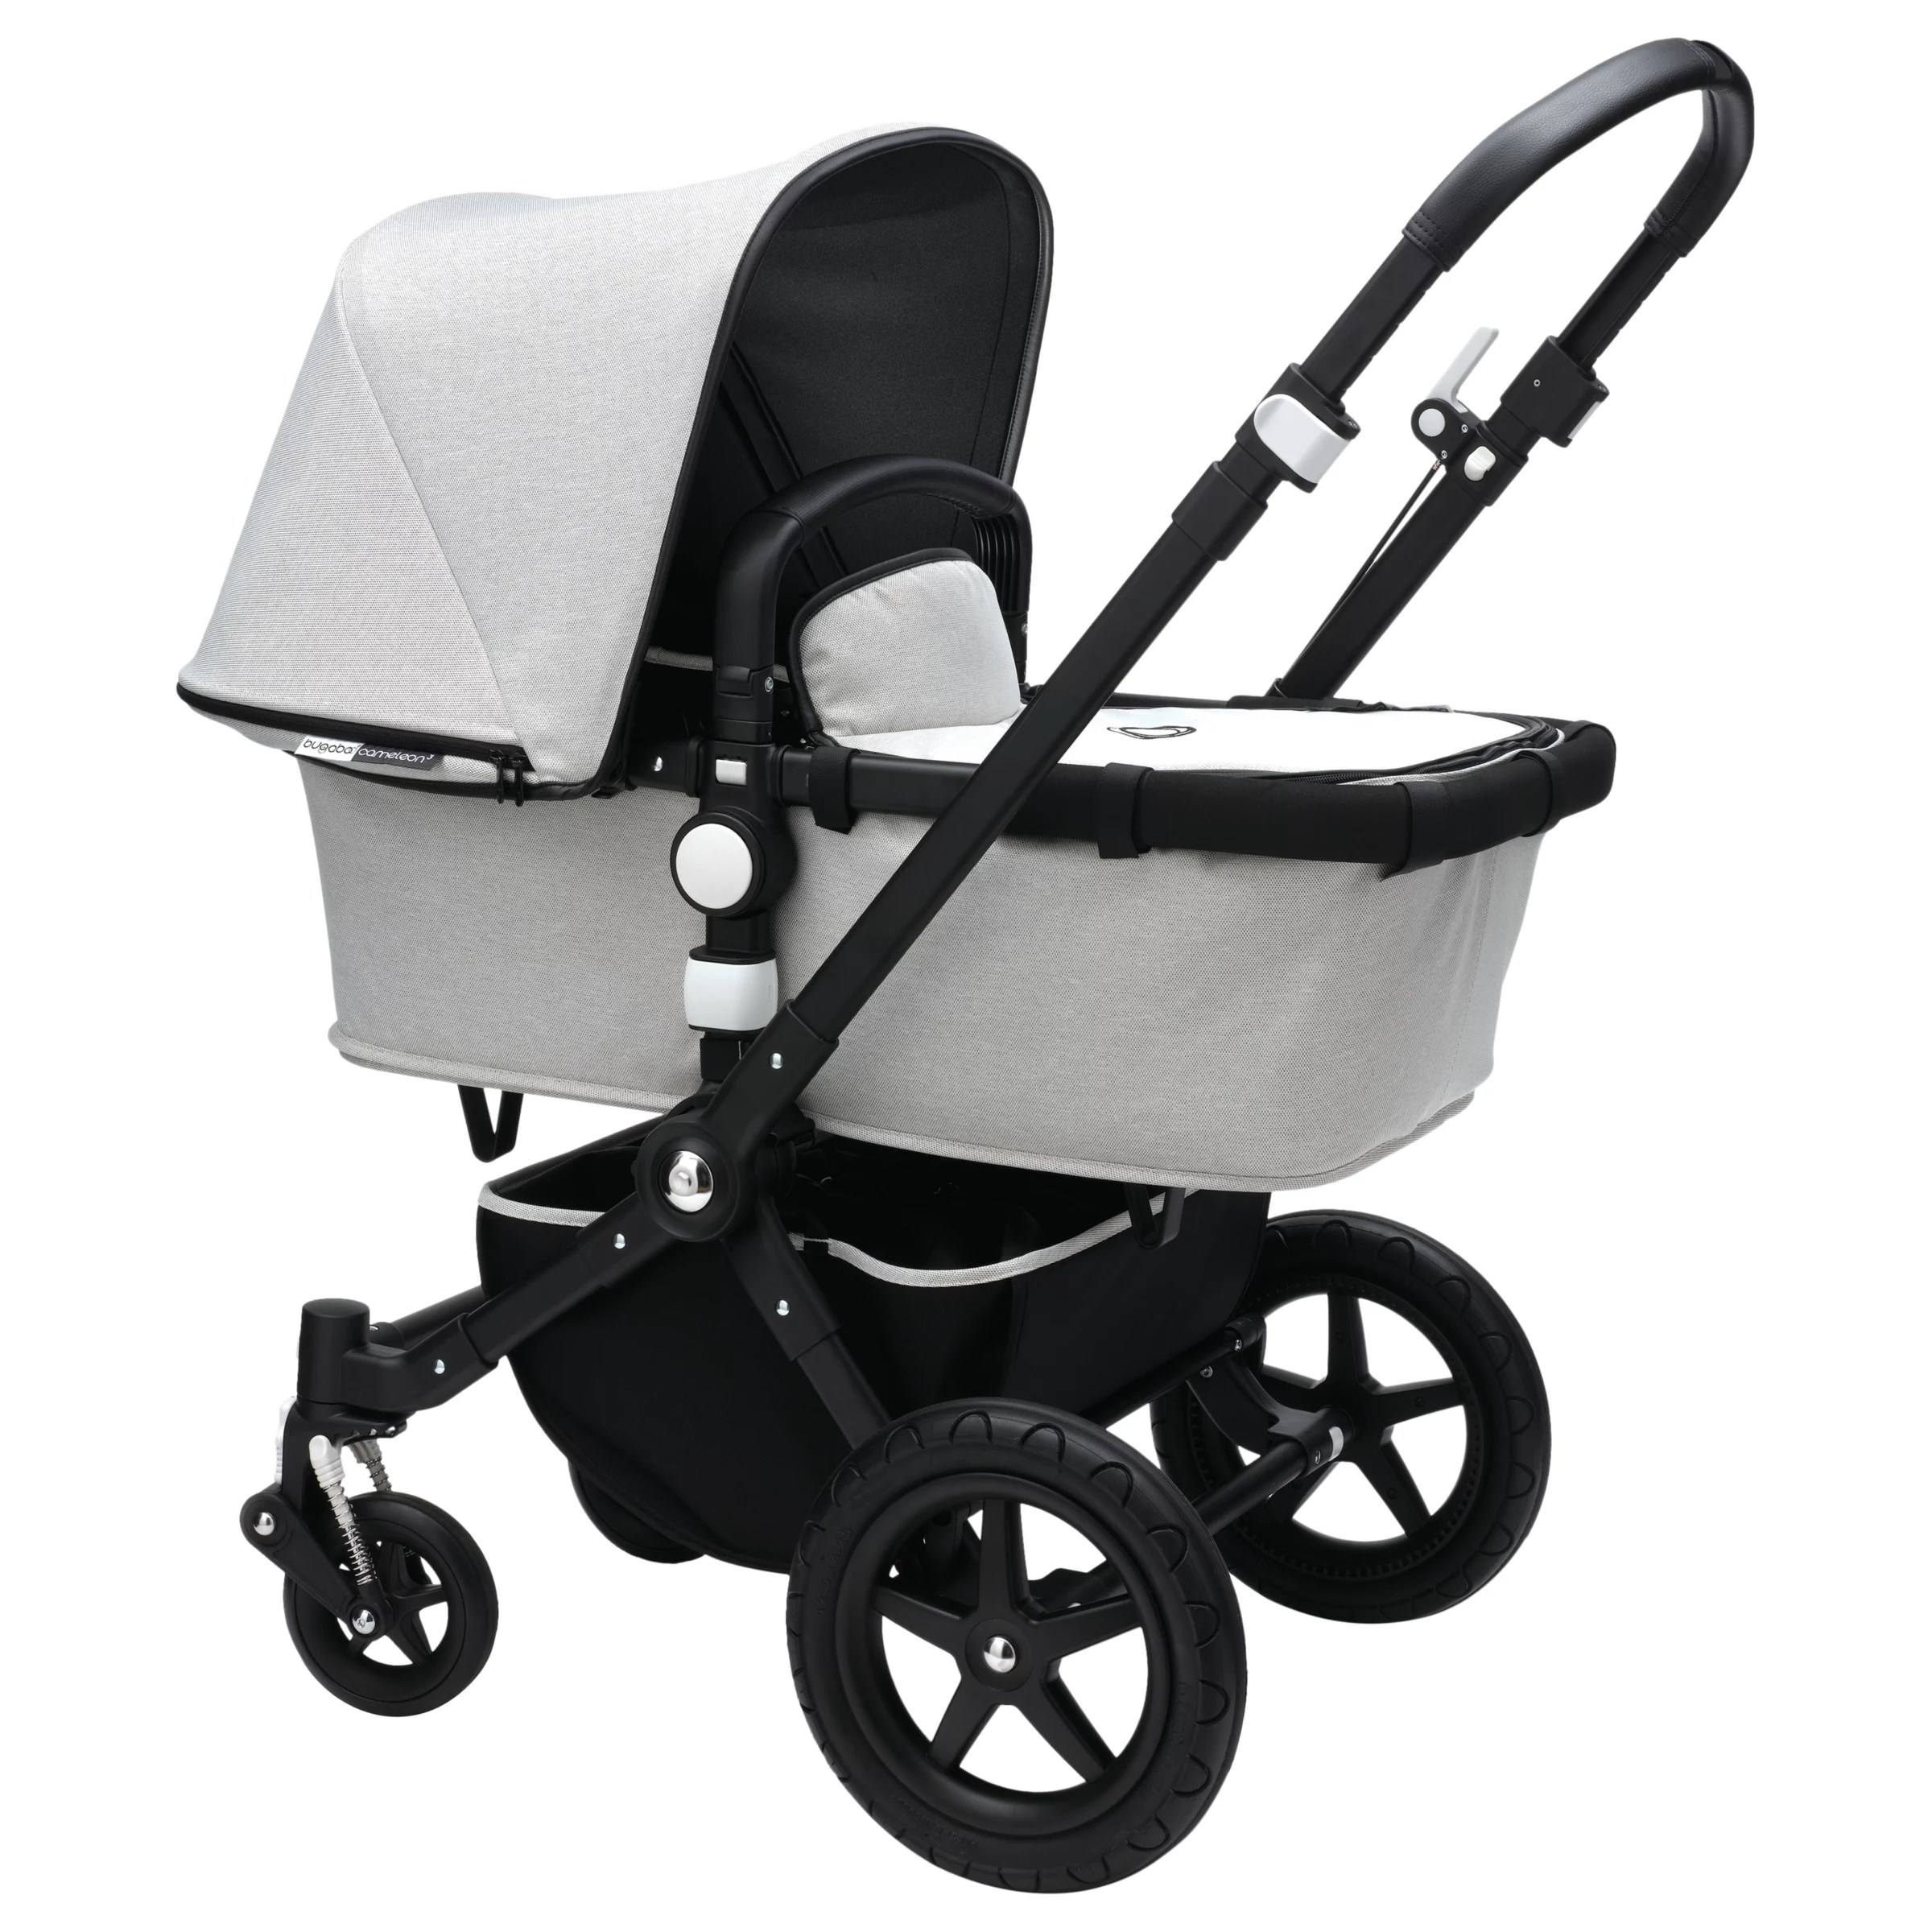 Bugaboo Cameleon 3 Maximum Weight Bugaboo Cameleon3 Atelier Complete Pushchair